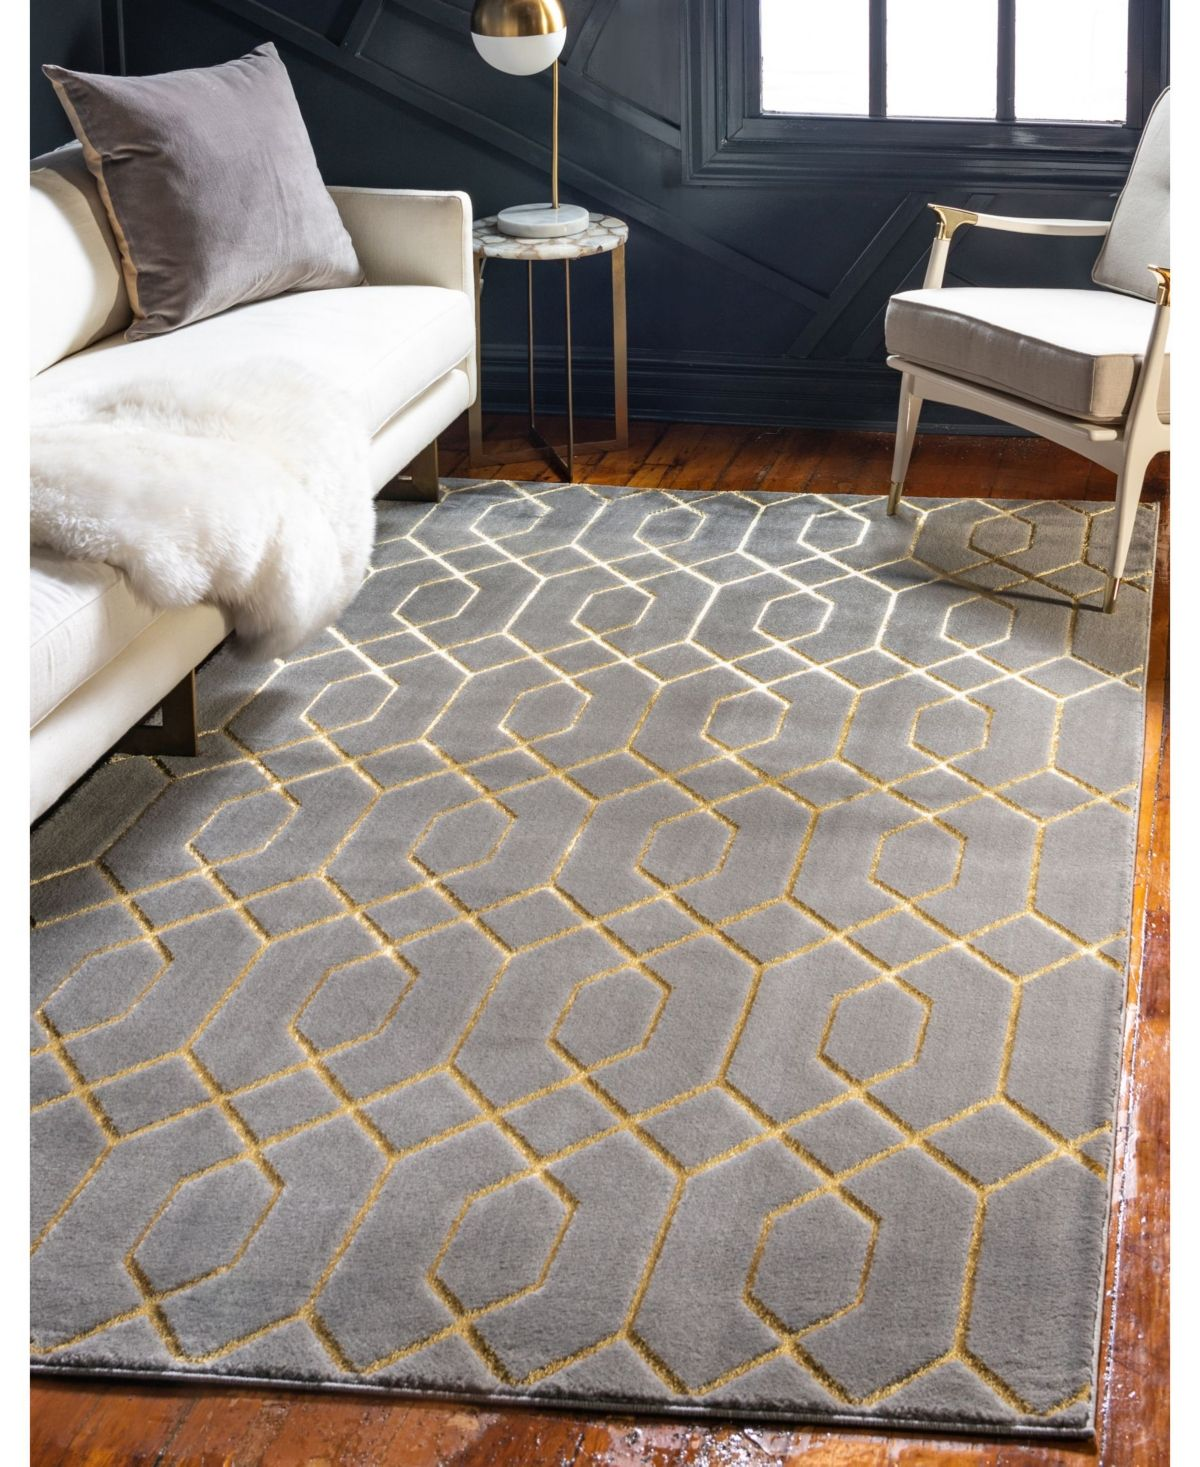 Marilyn Monroe Glam Mmg001 Gray Gold 5 X 8 Area Rug Reviews Furniture Macy S In 2020 Gold Living Room Grey And Gold Bedroom Glam Living Room